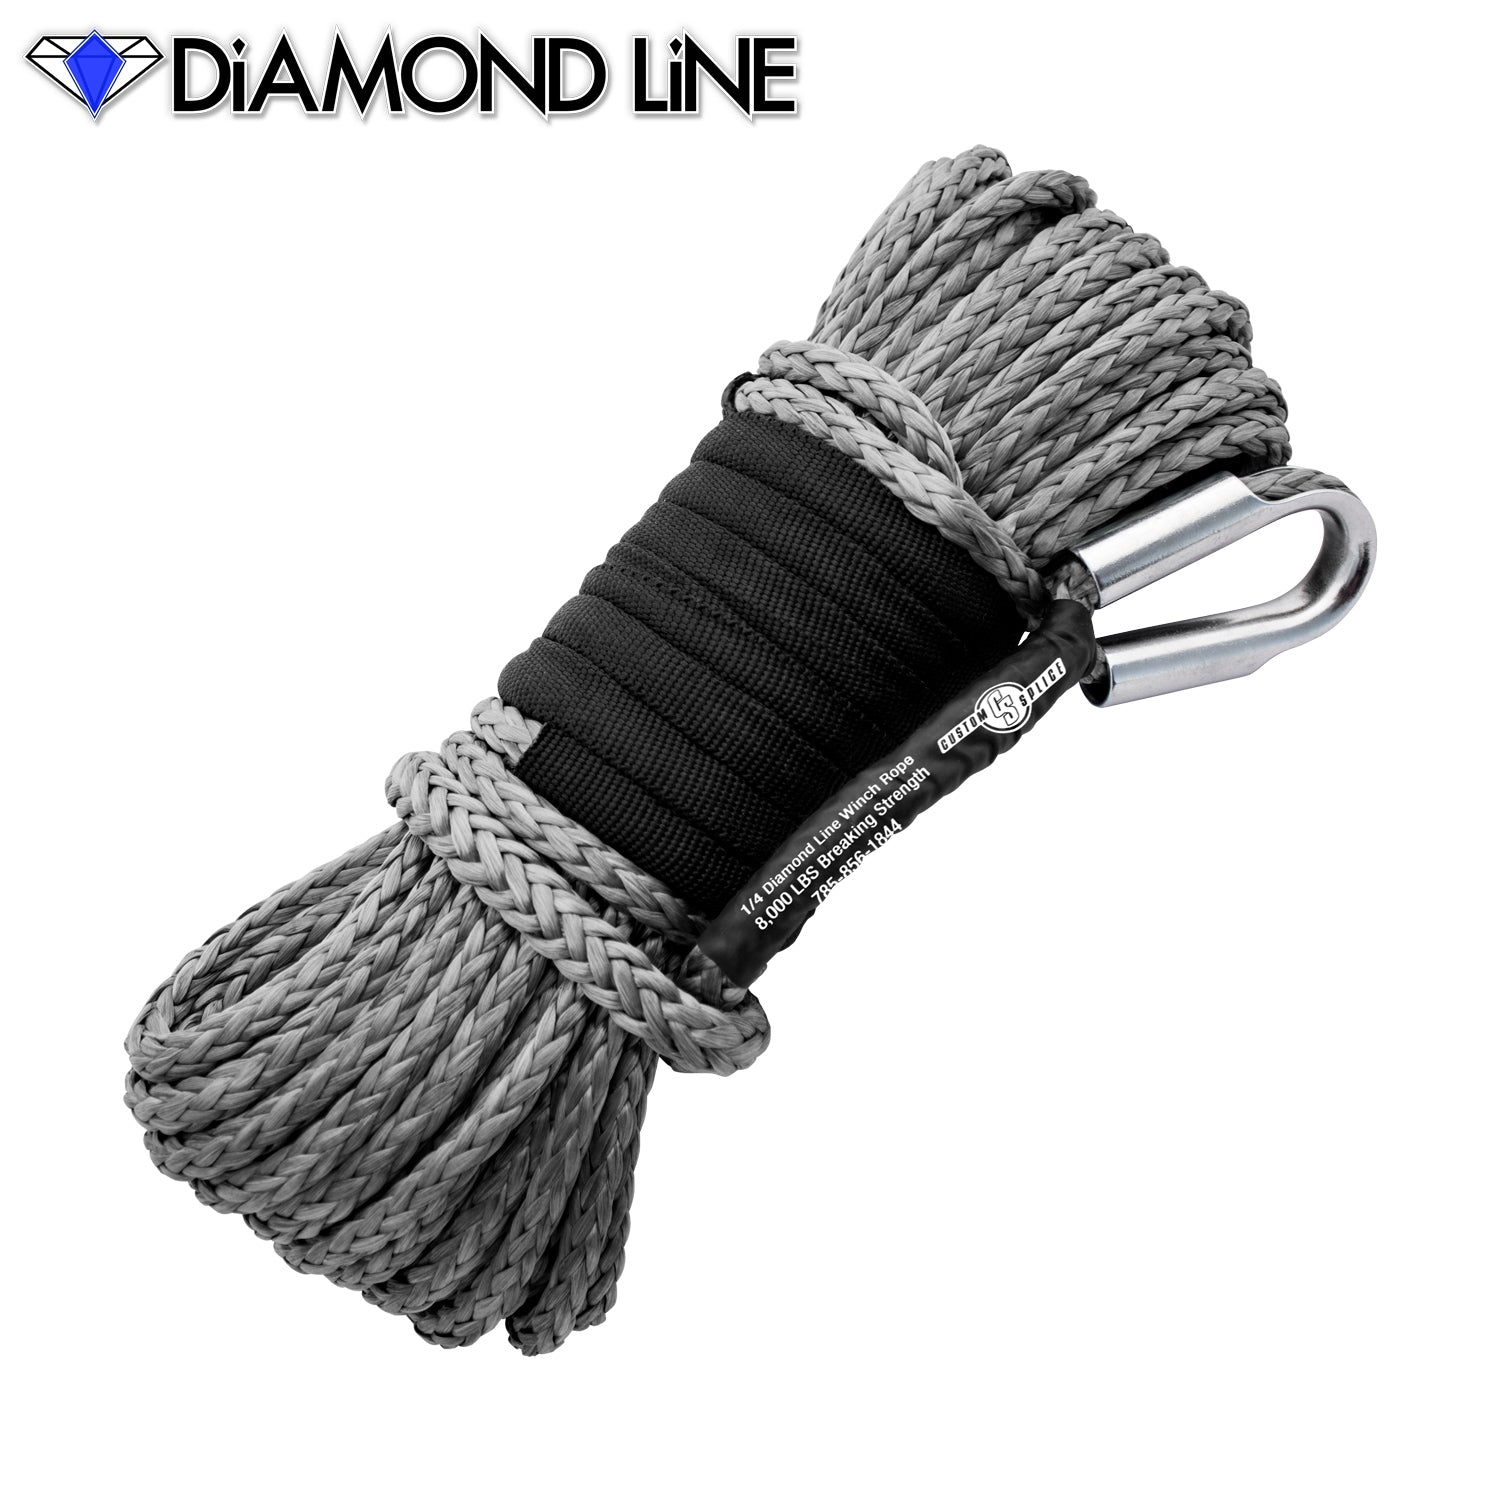 "1/4"" X 55' Main Line Winch Rope - Diamond Line"